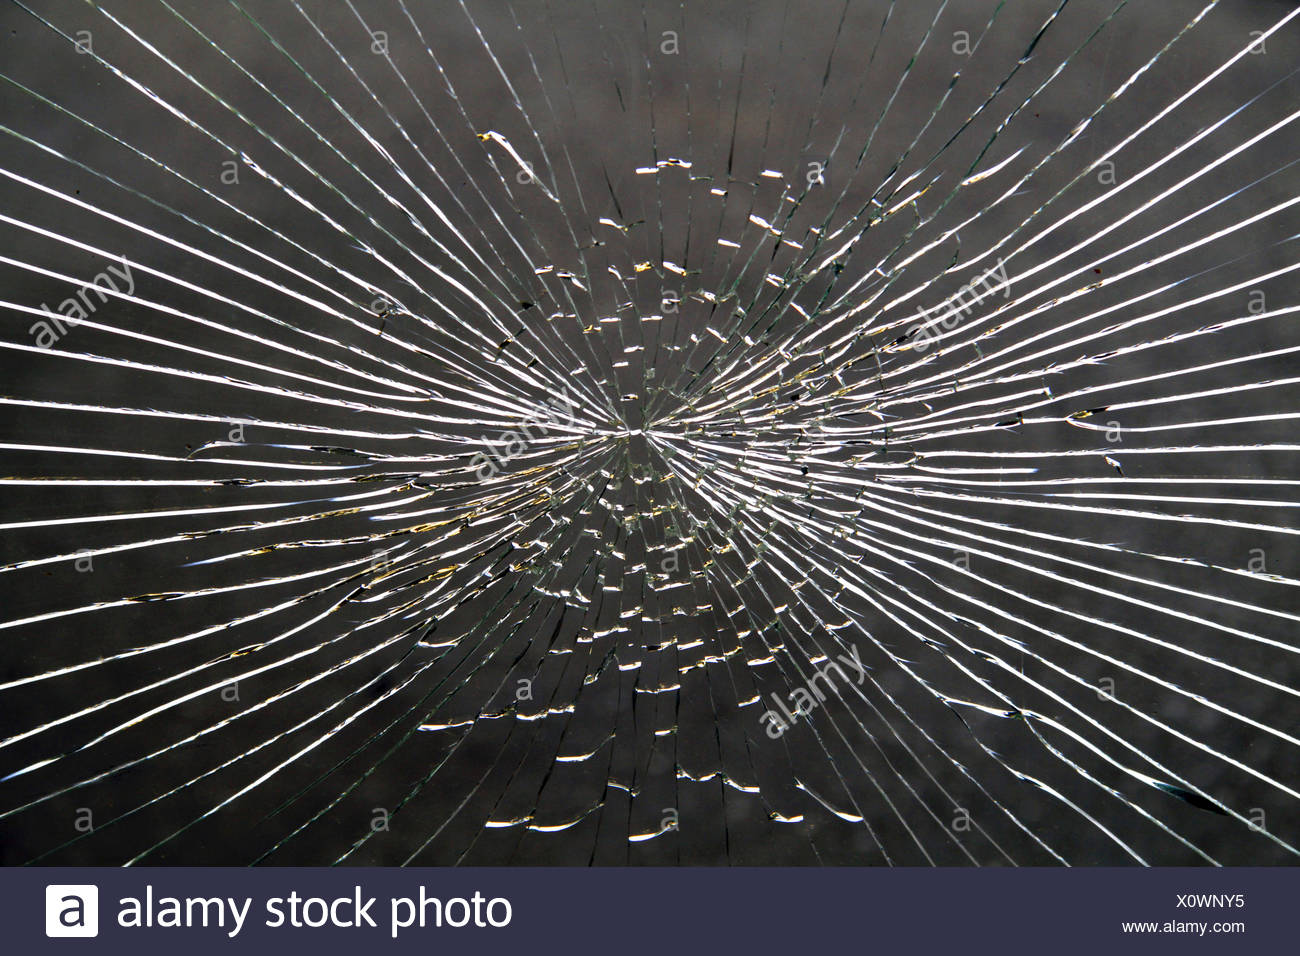 glass breakage caused by vandalism - Stock Image